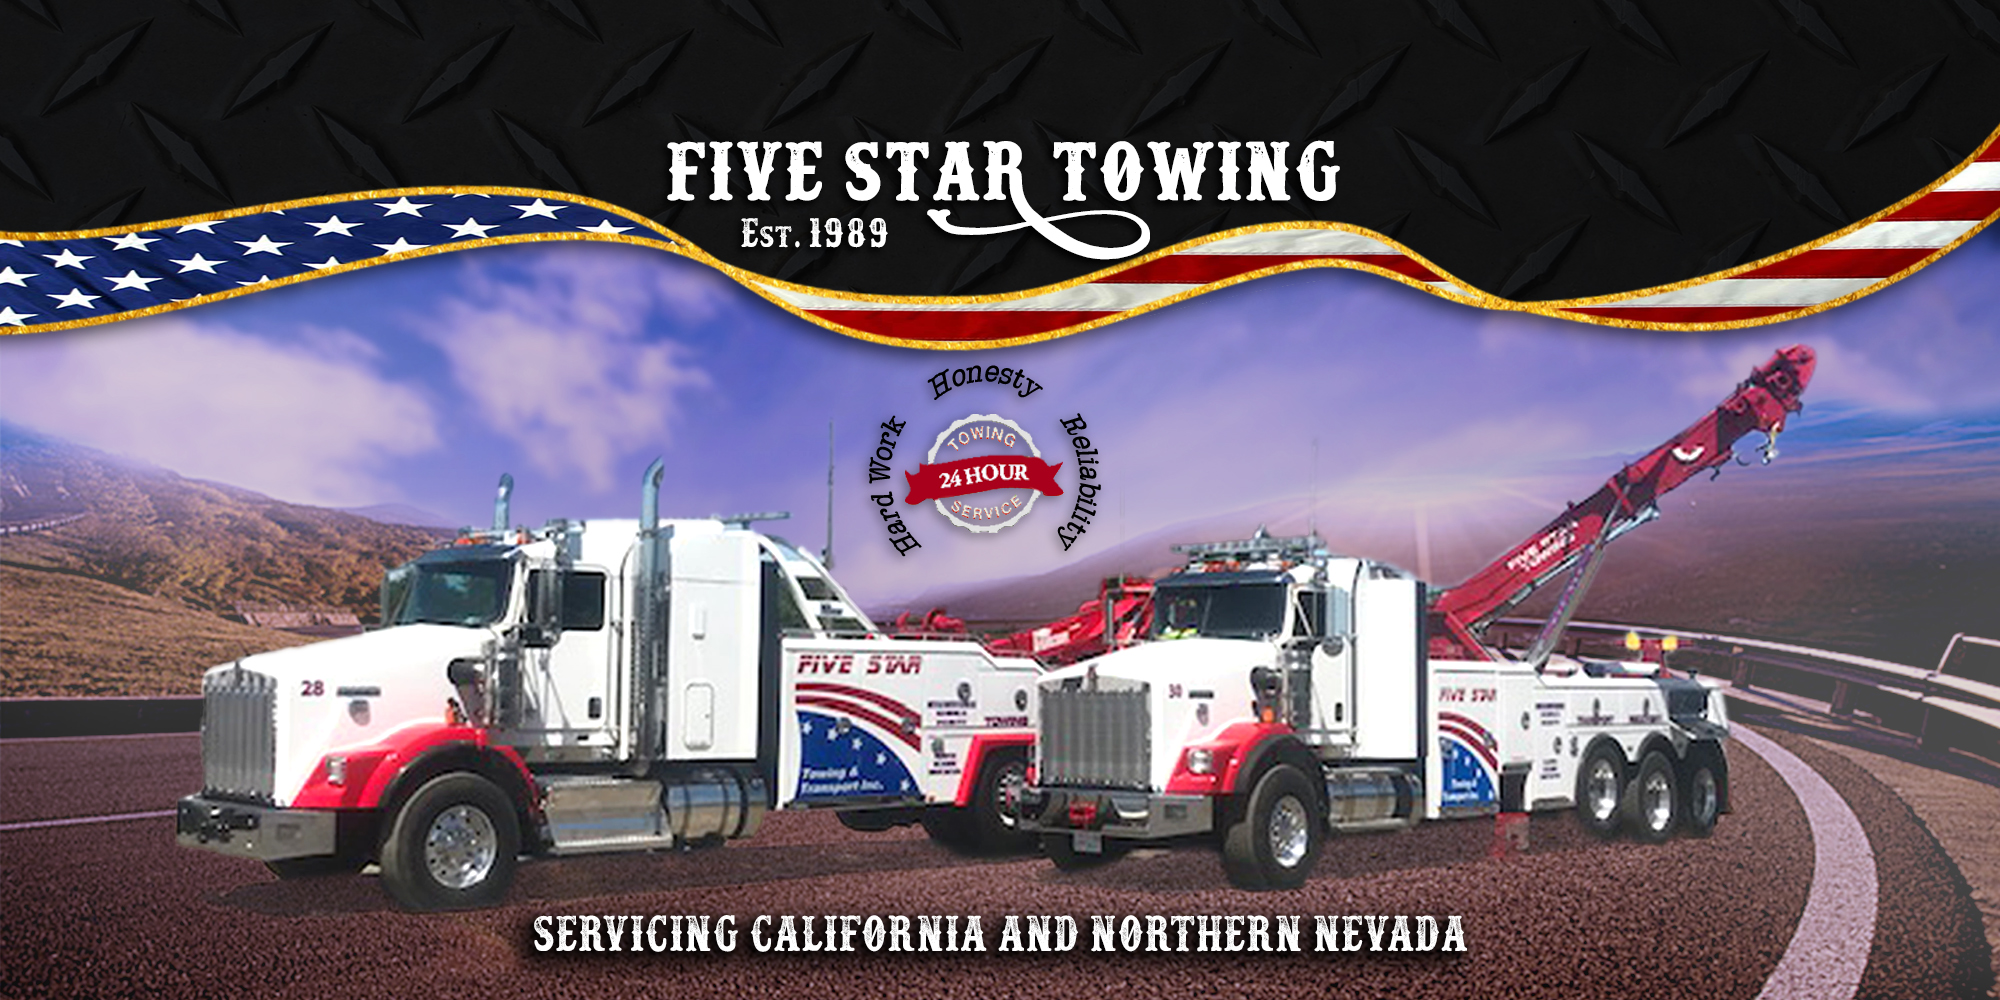 Vehicle Lien Sale - Five Star Towing Inc